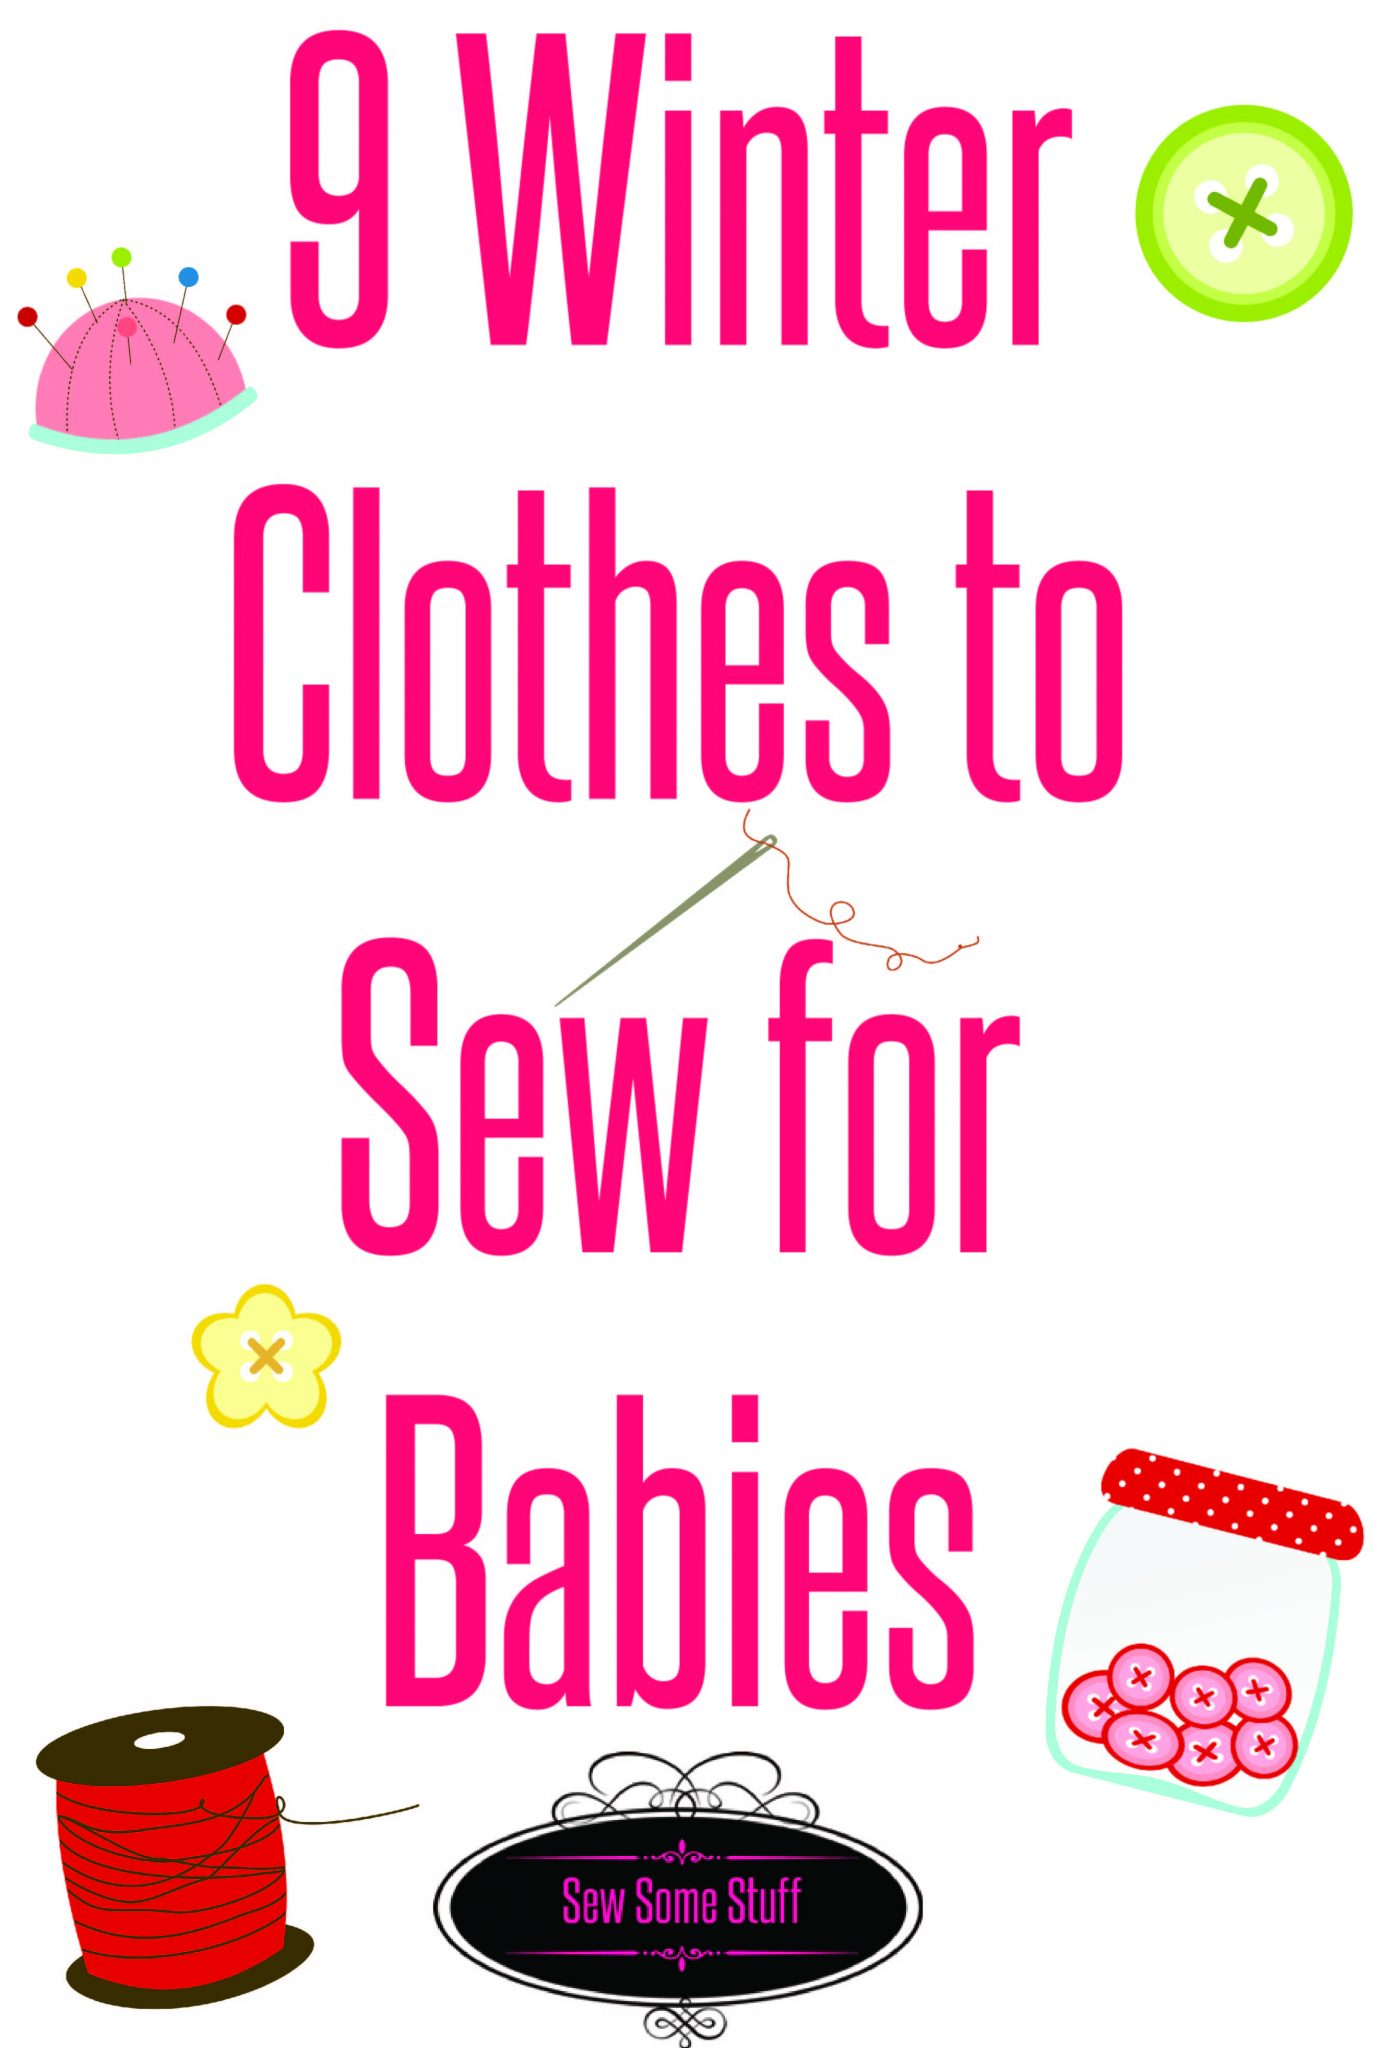 9 things to sew for babies on sewsomestuff.com